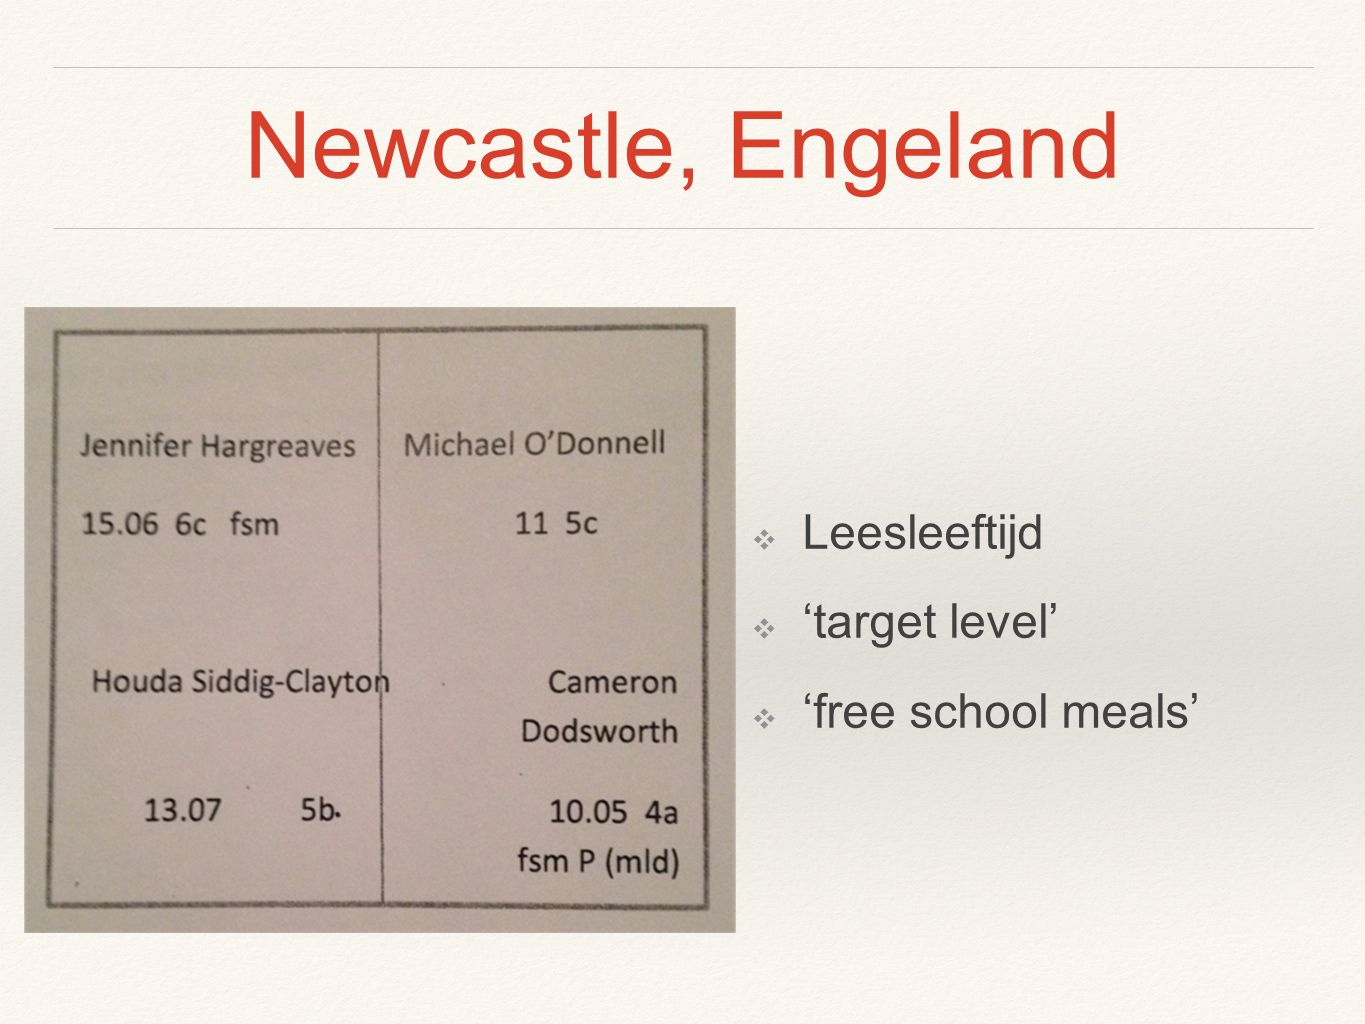 Newcastle, Engeland ❖ Leesleeftijd ❖ 'target level' ❖ 'free school meals'